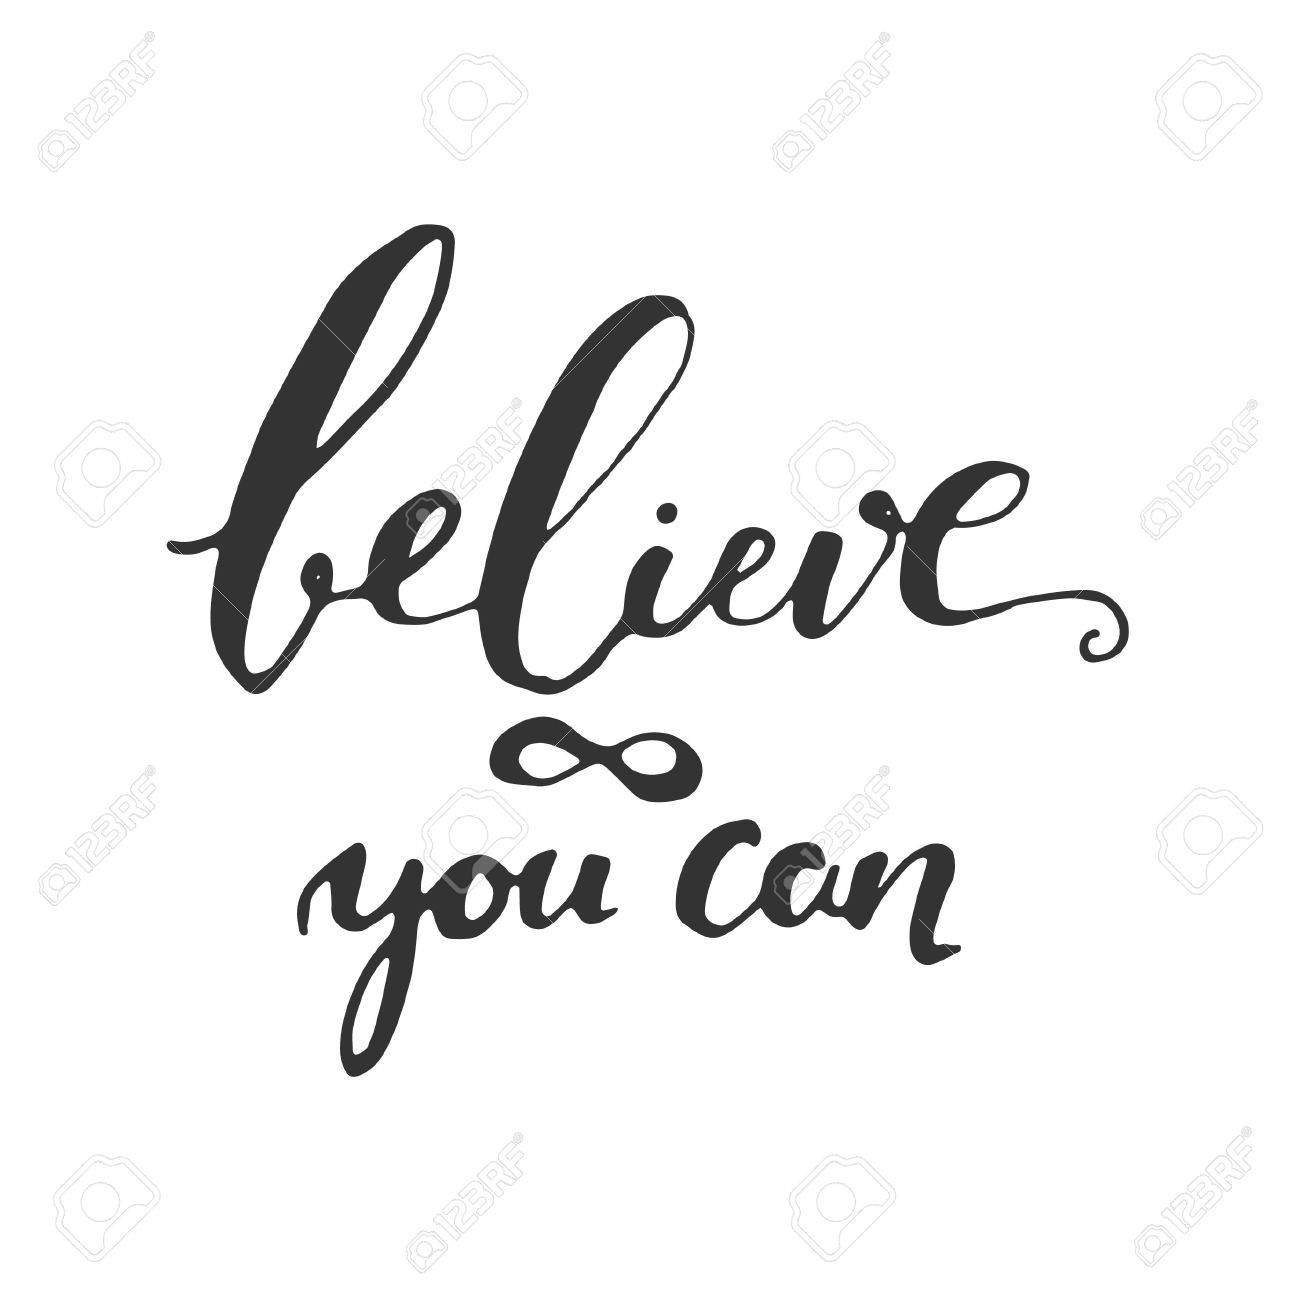 Wonderful Believe In Yourself. Inspirational And Motivation Quote For Fitness, Gym.  Modern Calligraphic Style